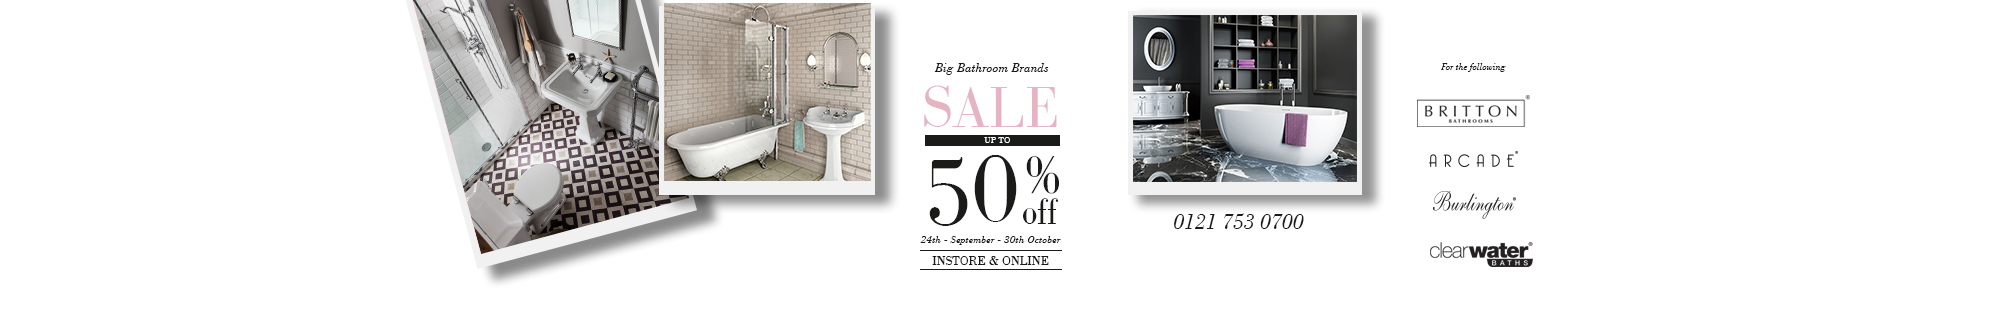 Big Bathroom Brands Sale - Up to 50% off - 24th September to 30th October online and instore